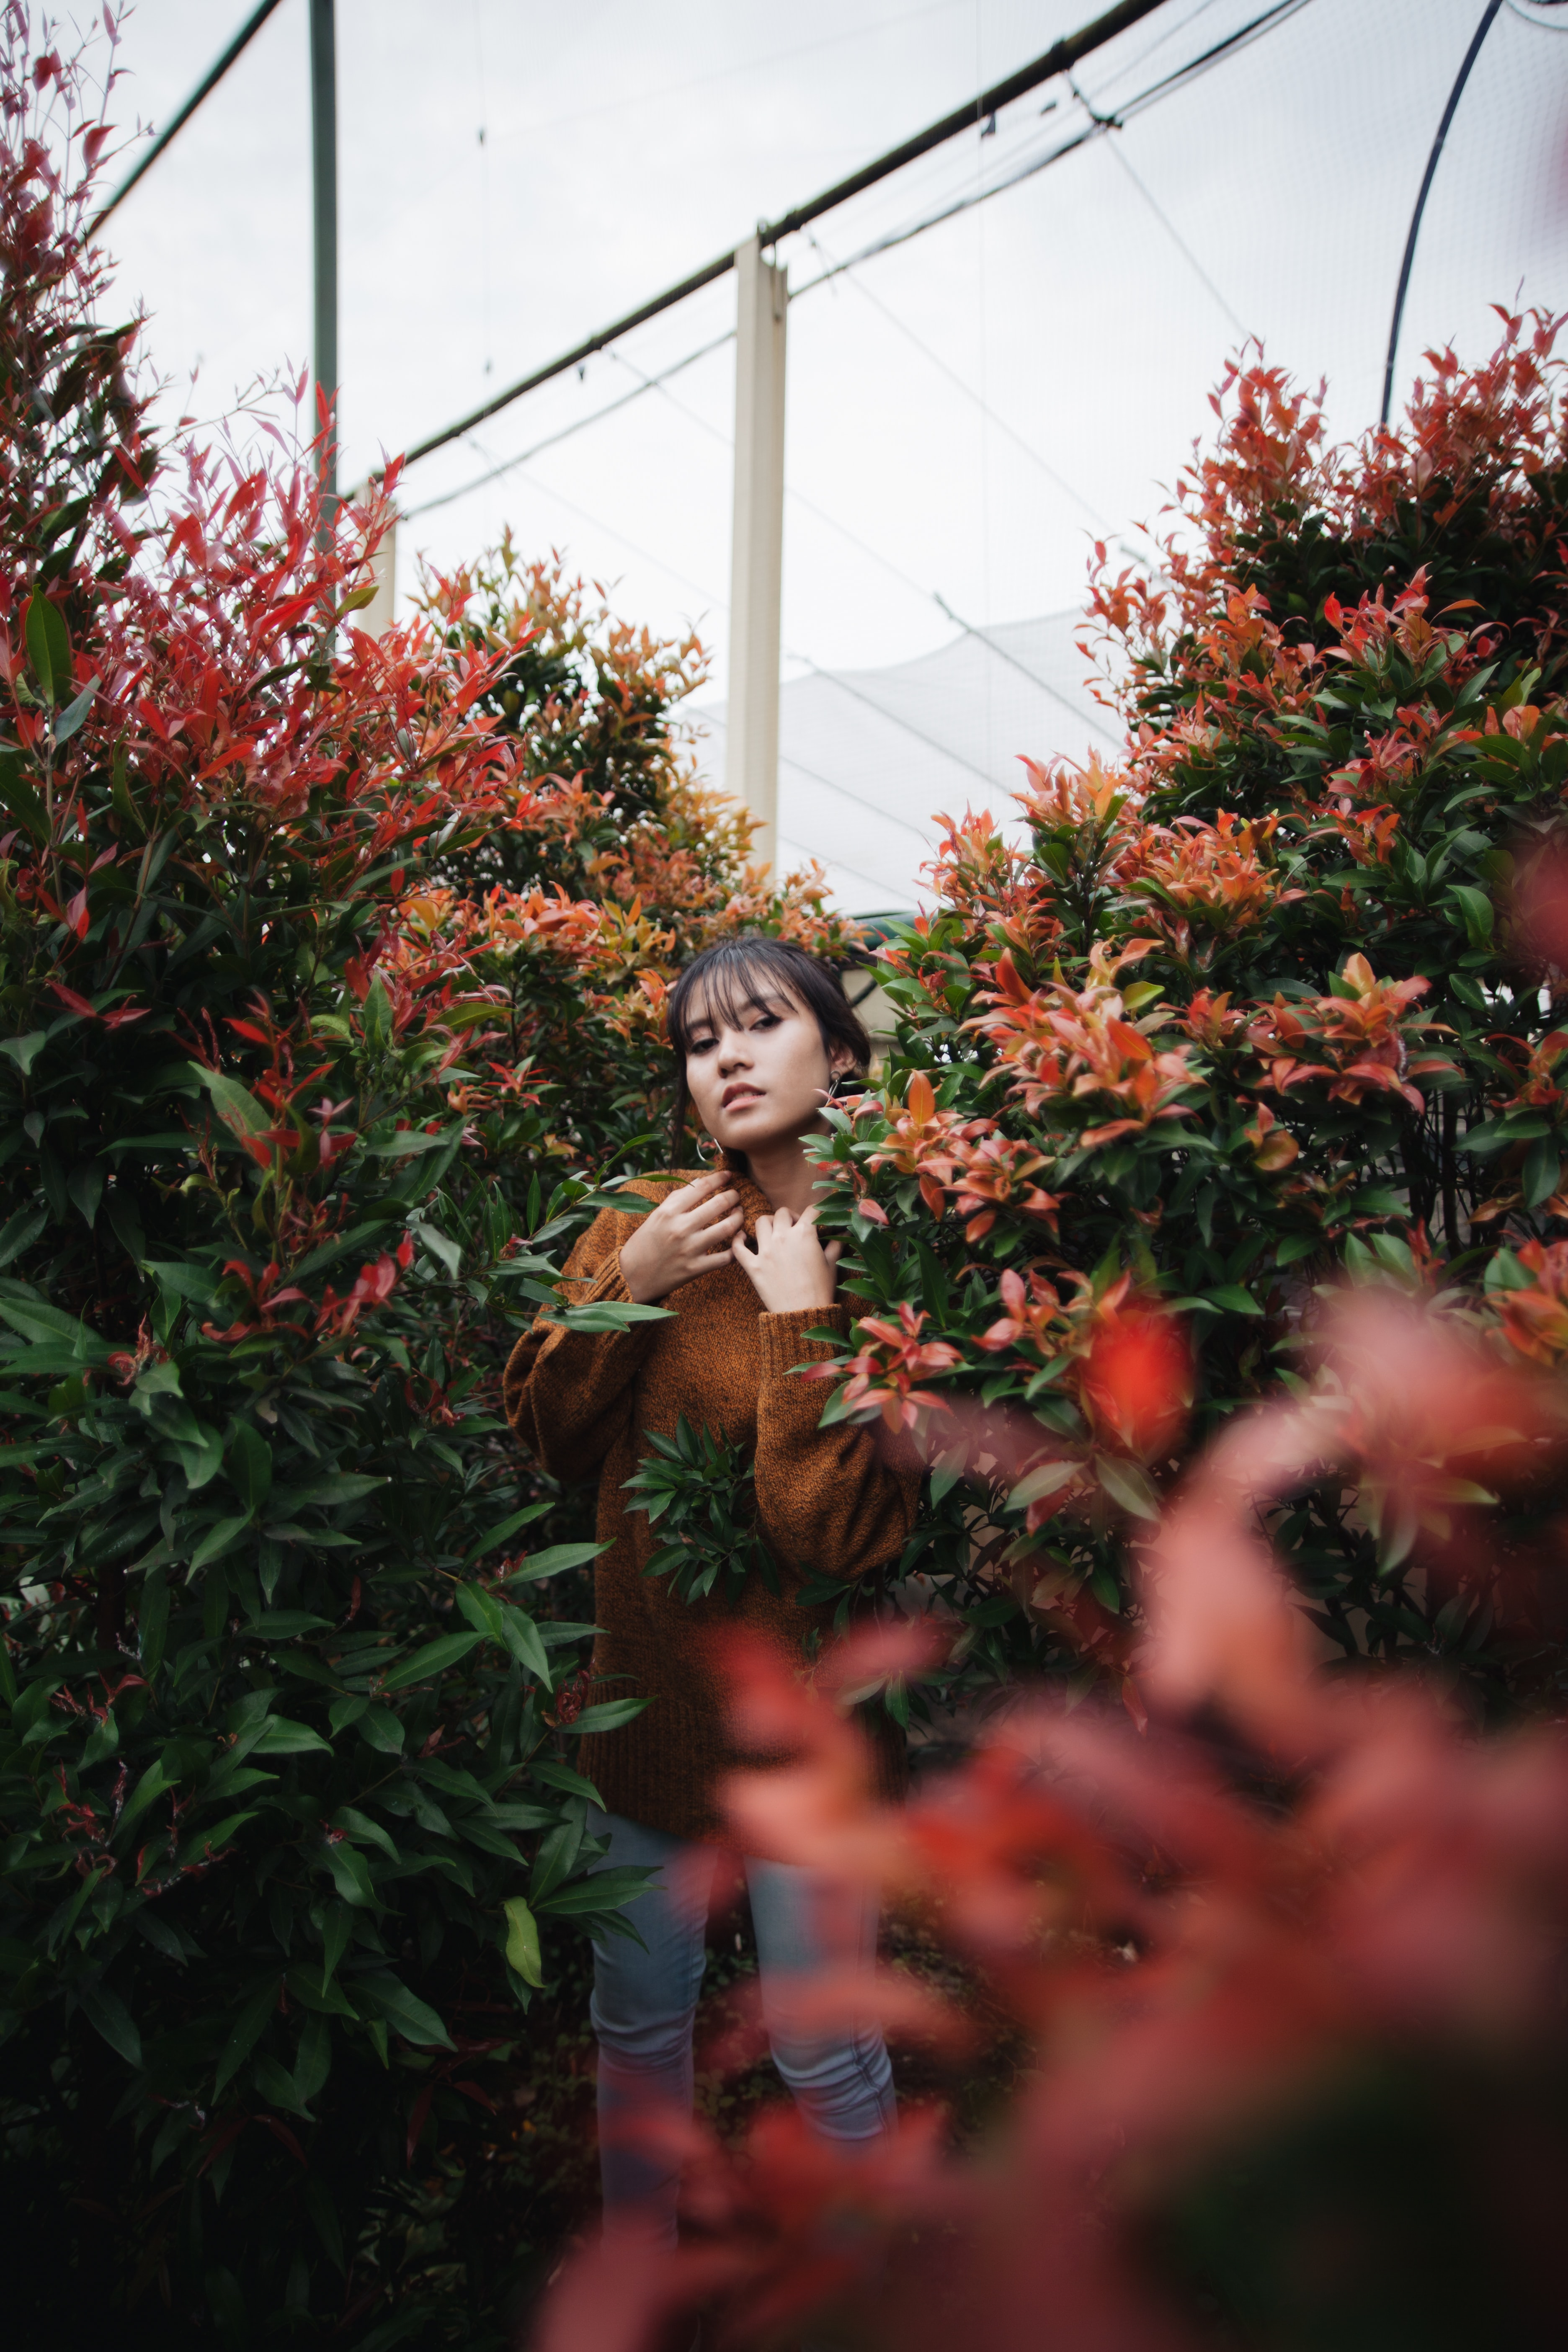 woman beside red flowers during daytime